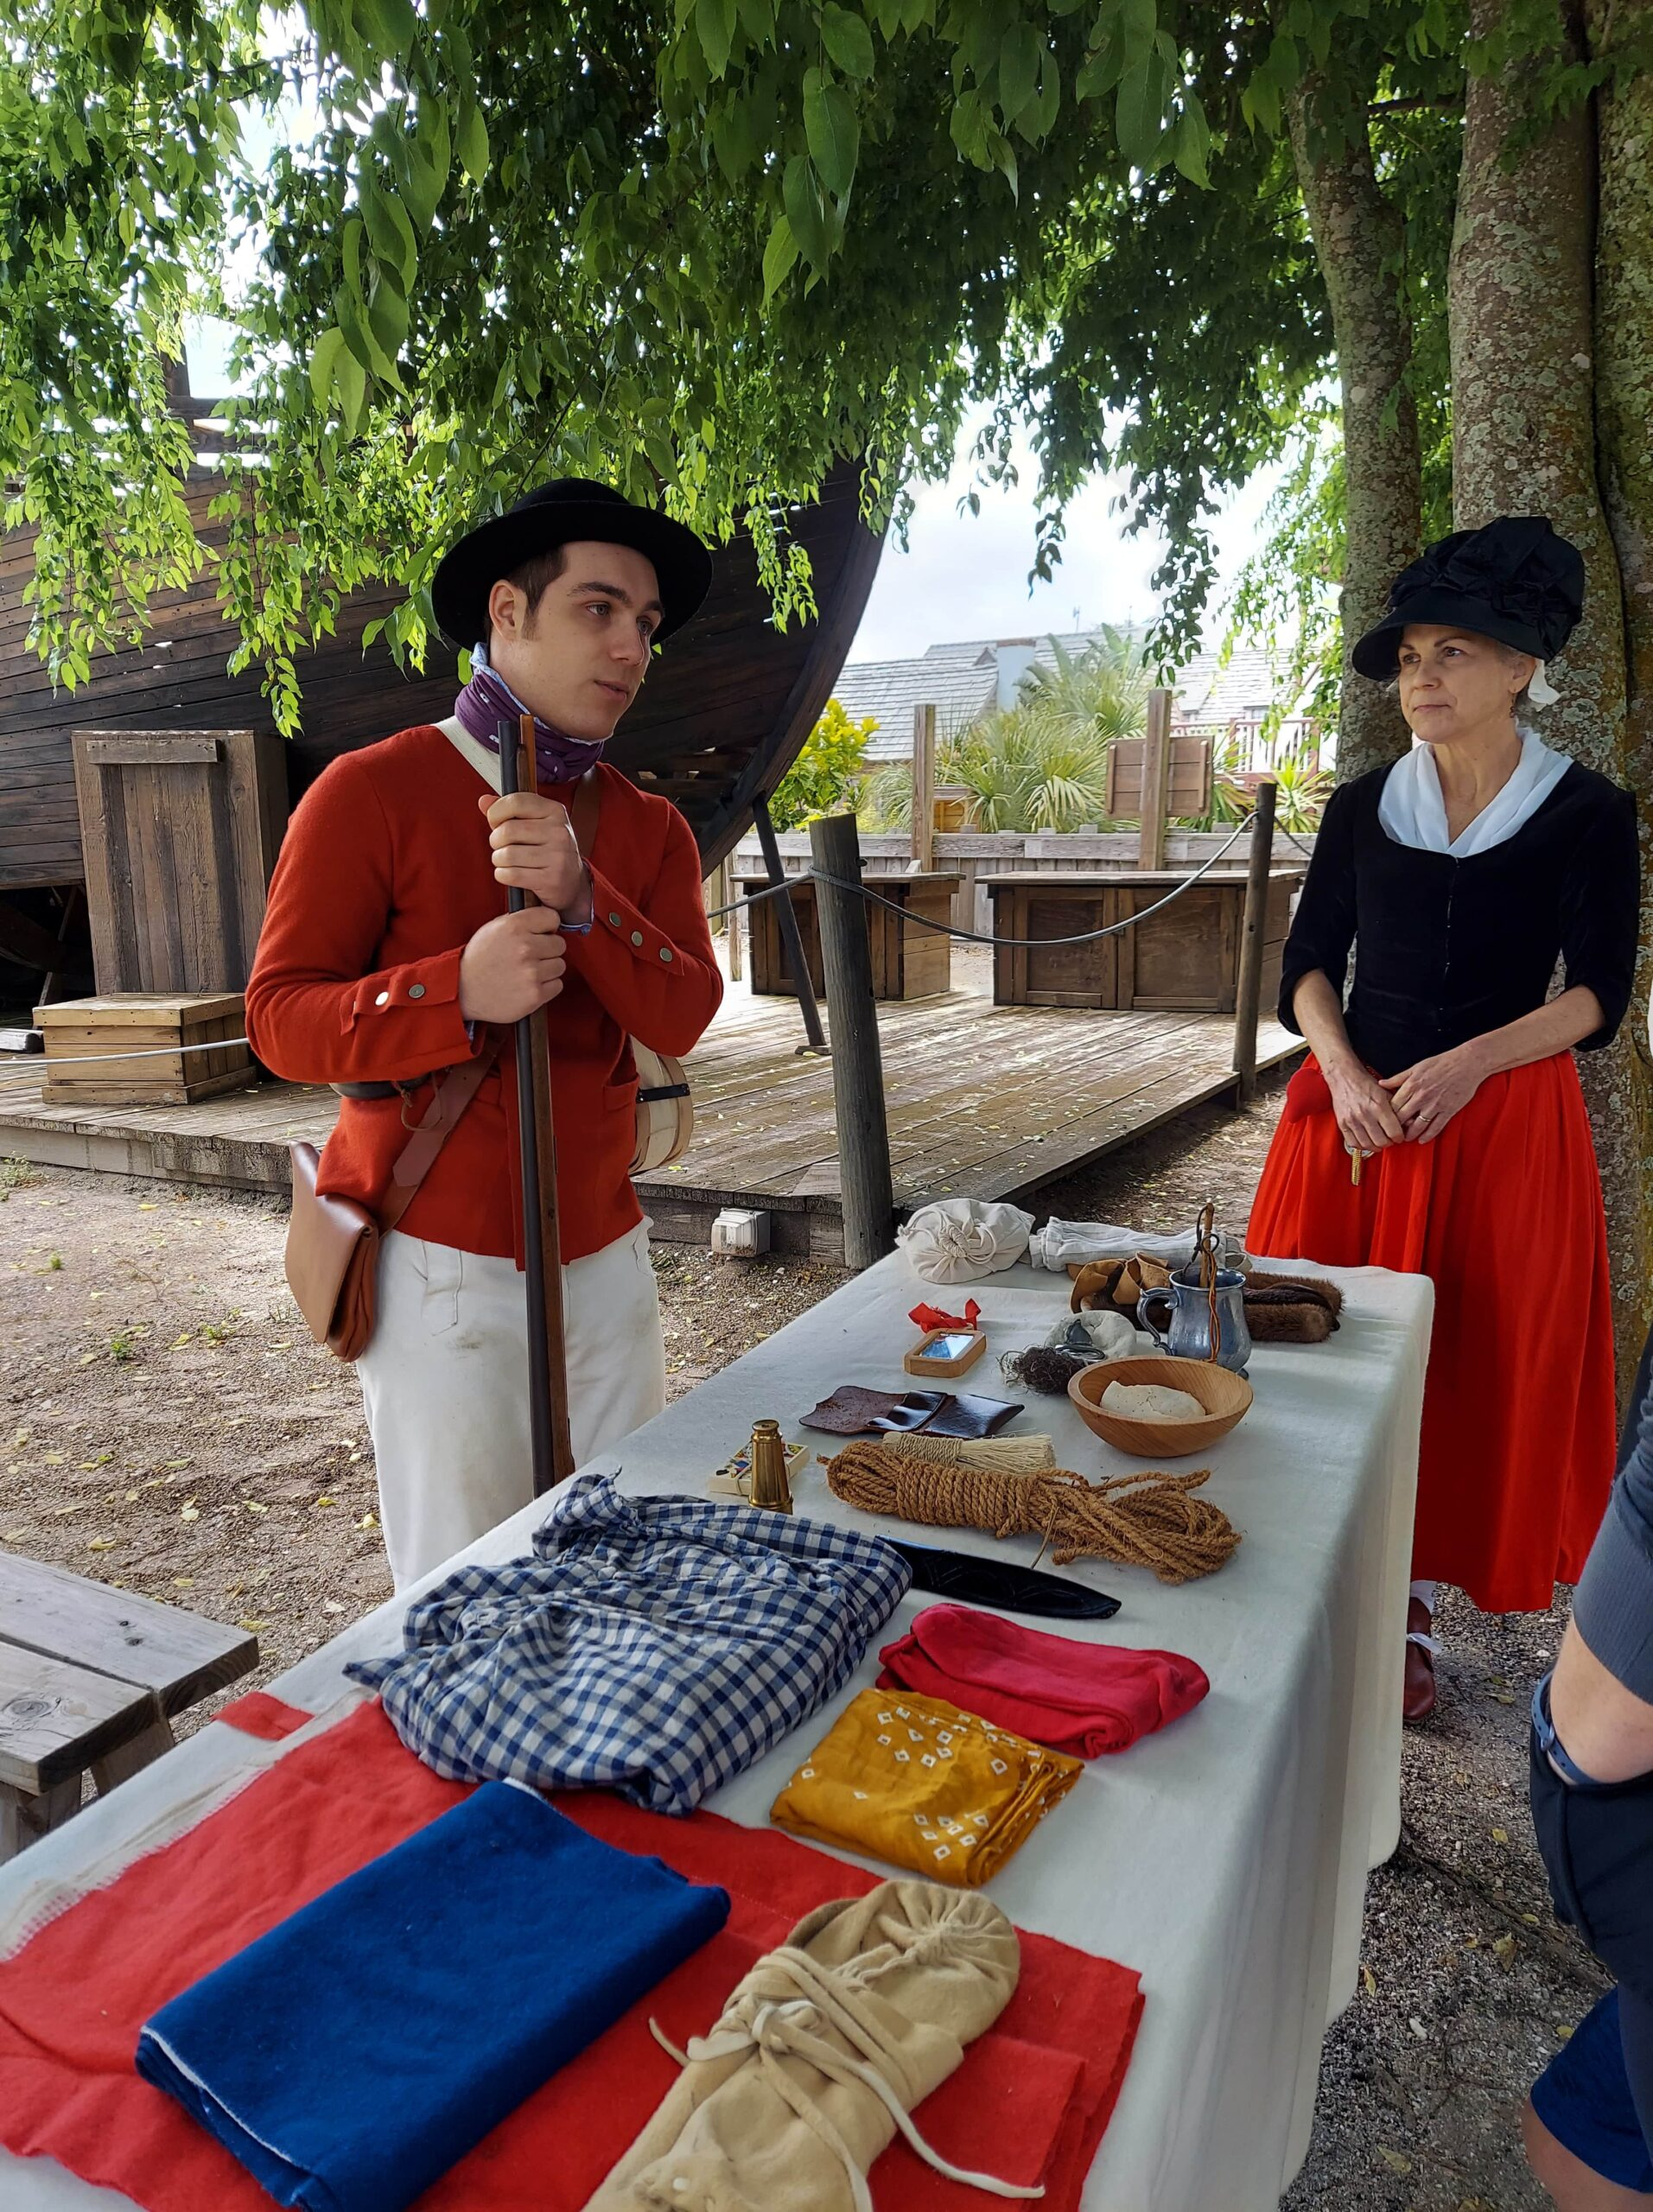 The Colonial Quarter shows families a glimpse of life in early St. Augustine.